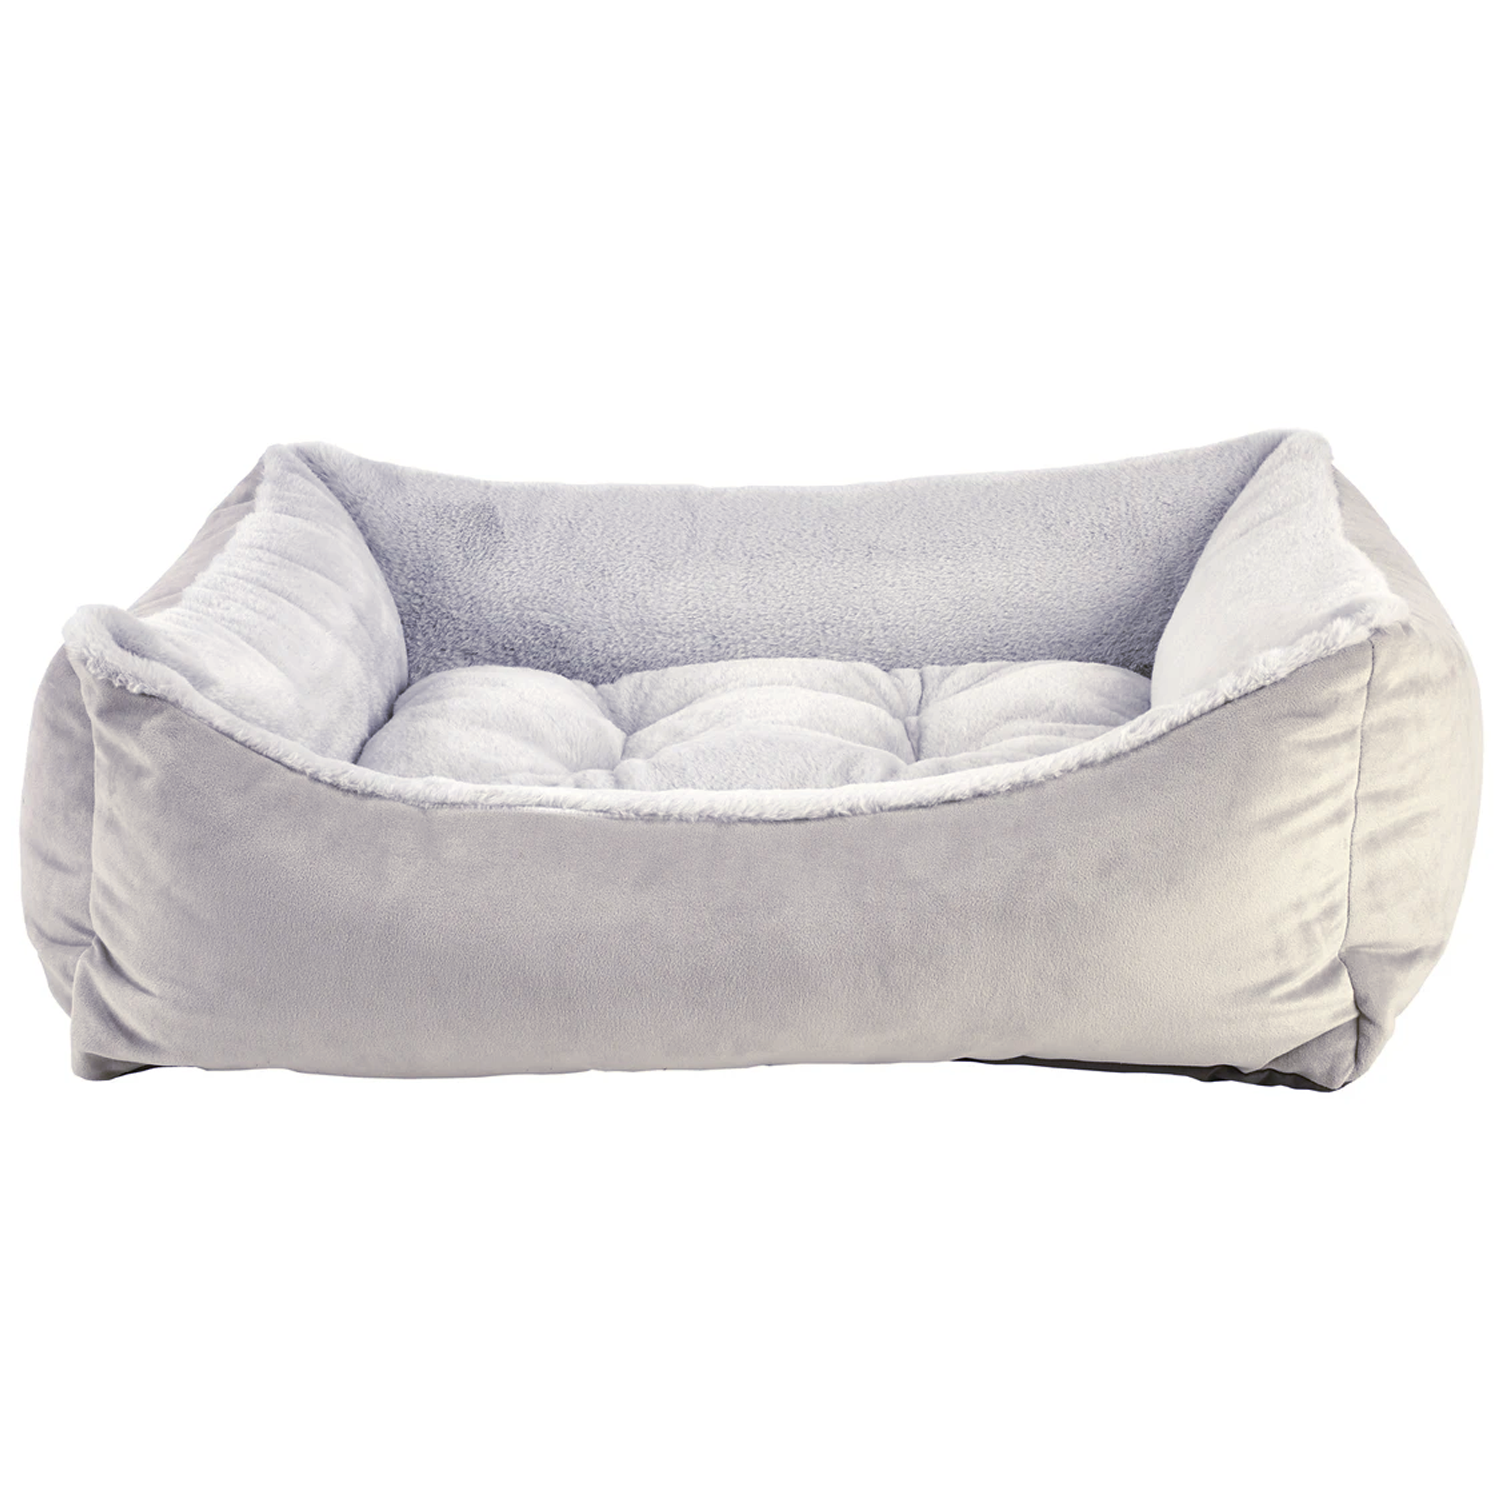 Scoop Dog Bed: Cloud